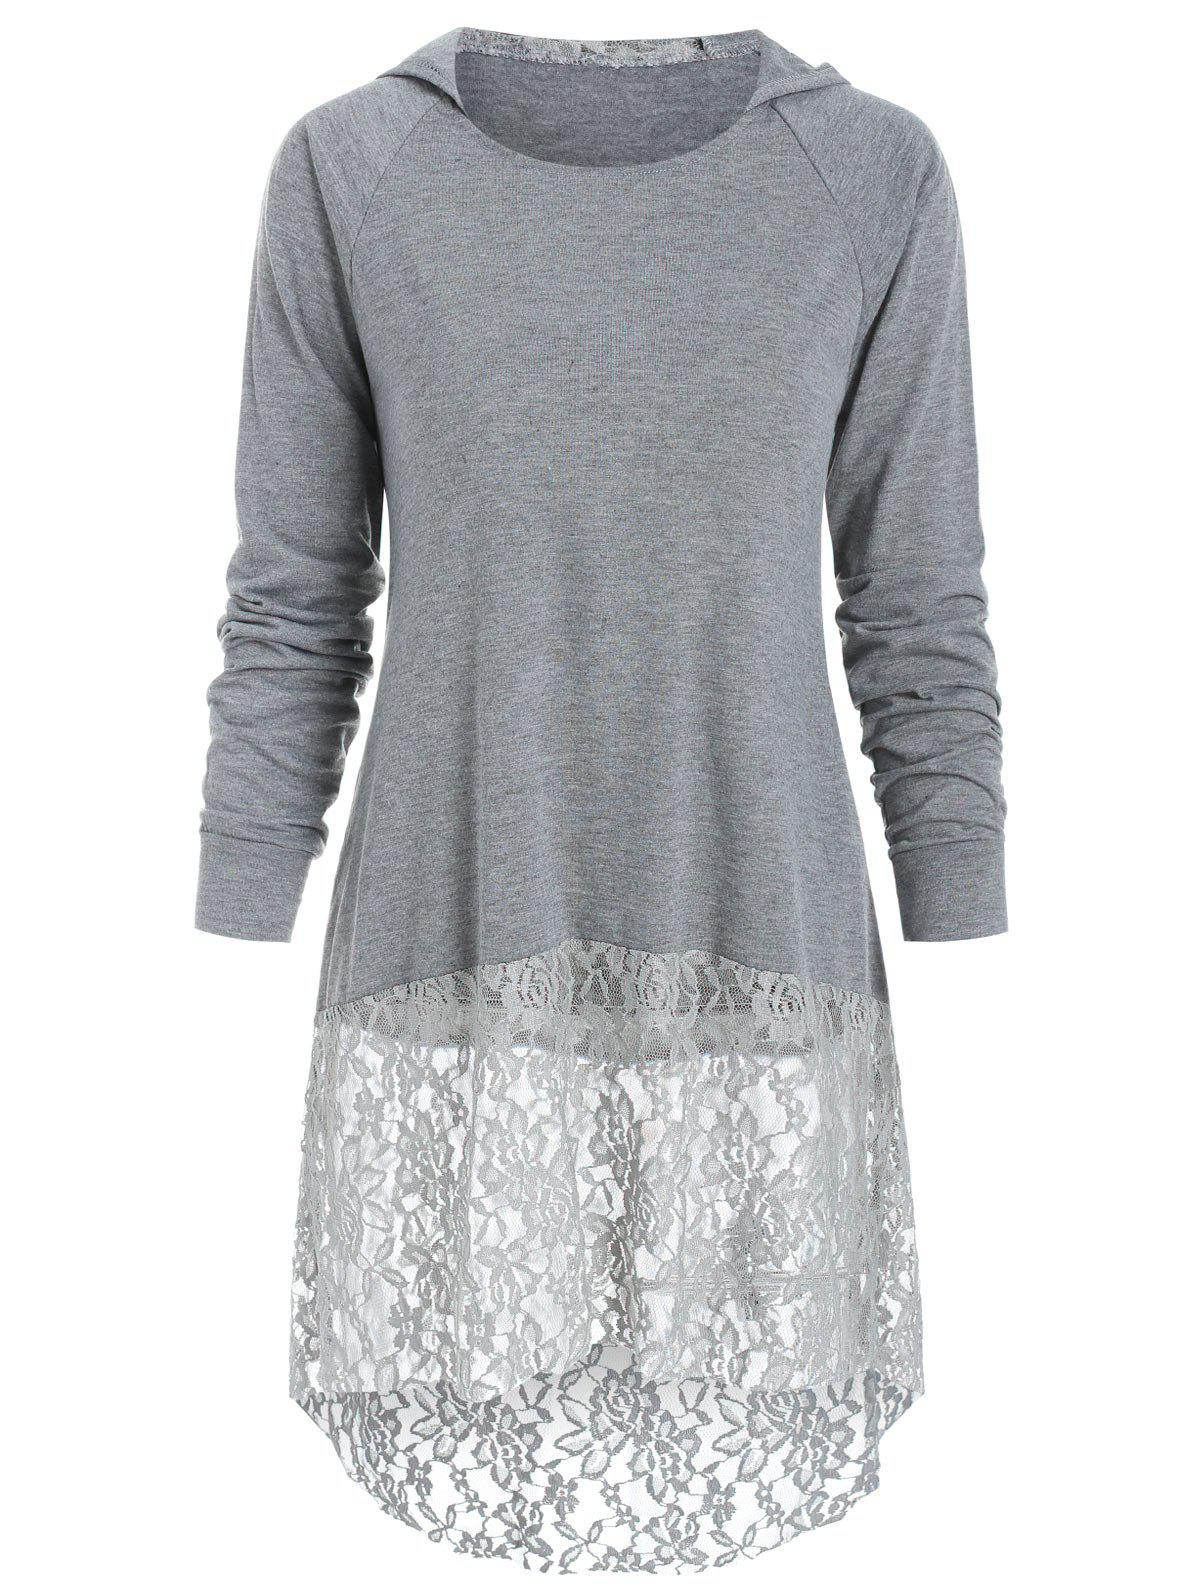 Long Sleeve Lace Panel Hooded Top - GRAY CLOUD M